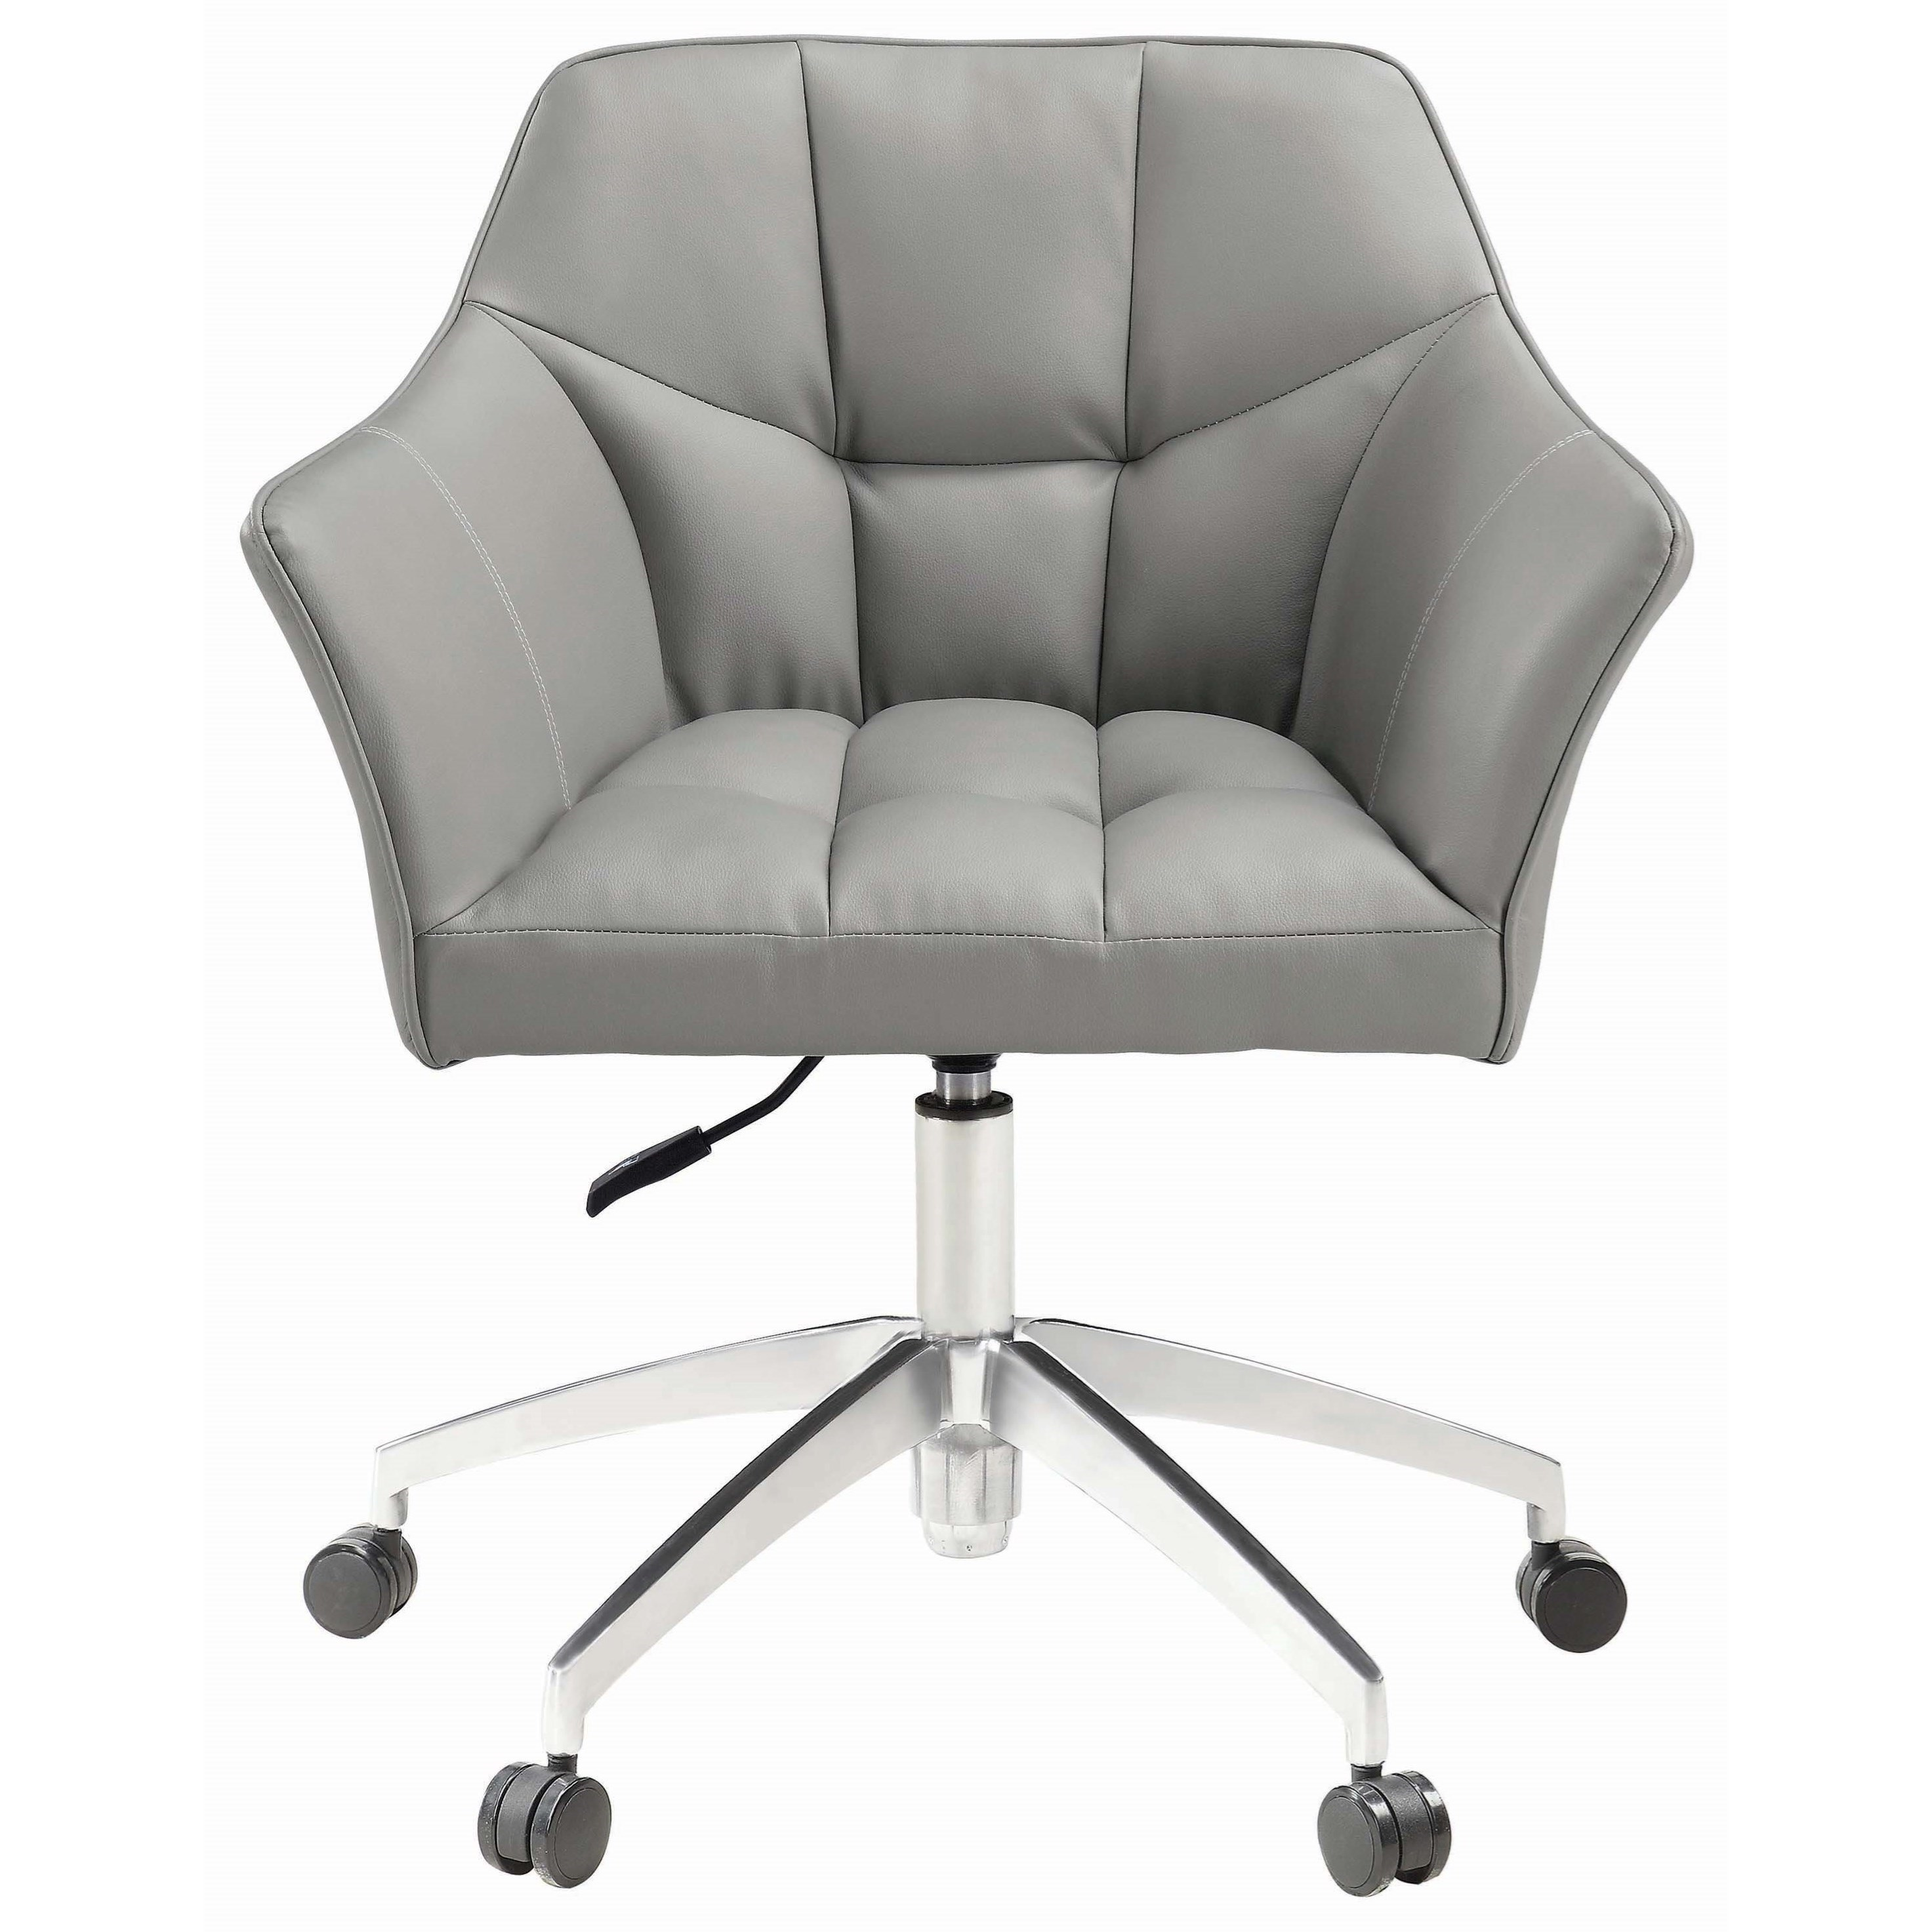 Scott Living 80153 Office Chair - Item Number: 801538